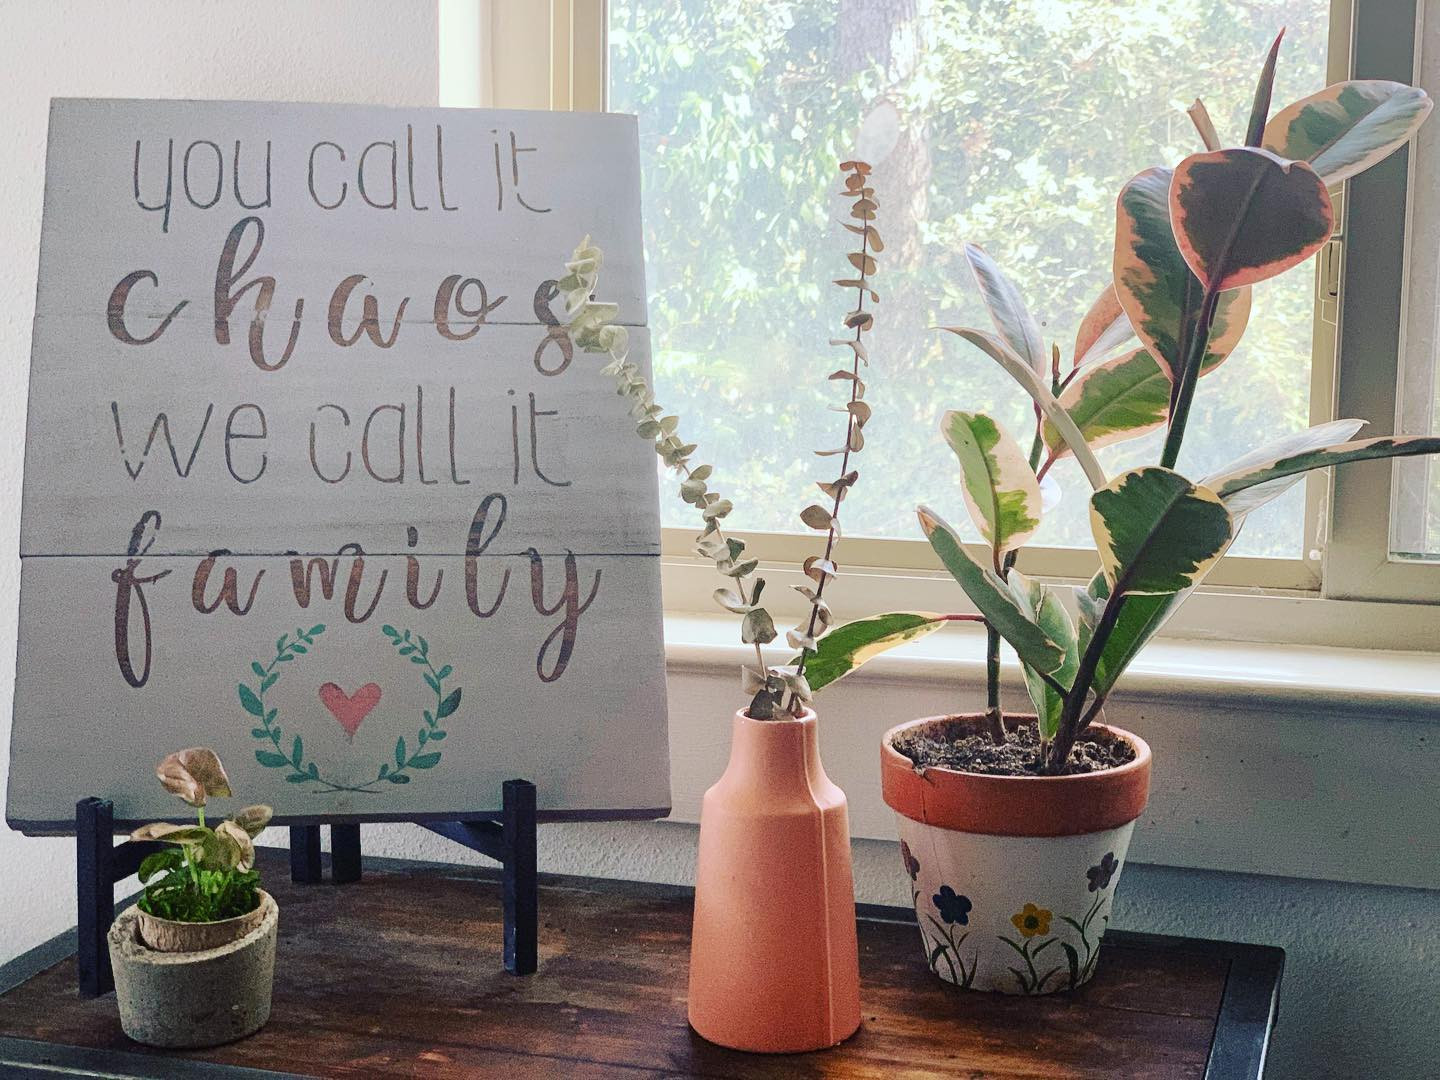 Thankful for our chaotic family!!!! ... and pink plants that look so classy, yet vintage!! #waterwednesday #pinkplants #plantsmakepeoplehappy #thankful #waxplant #pinkarrowhead #eucalyptus #pinkpottery